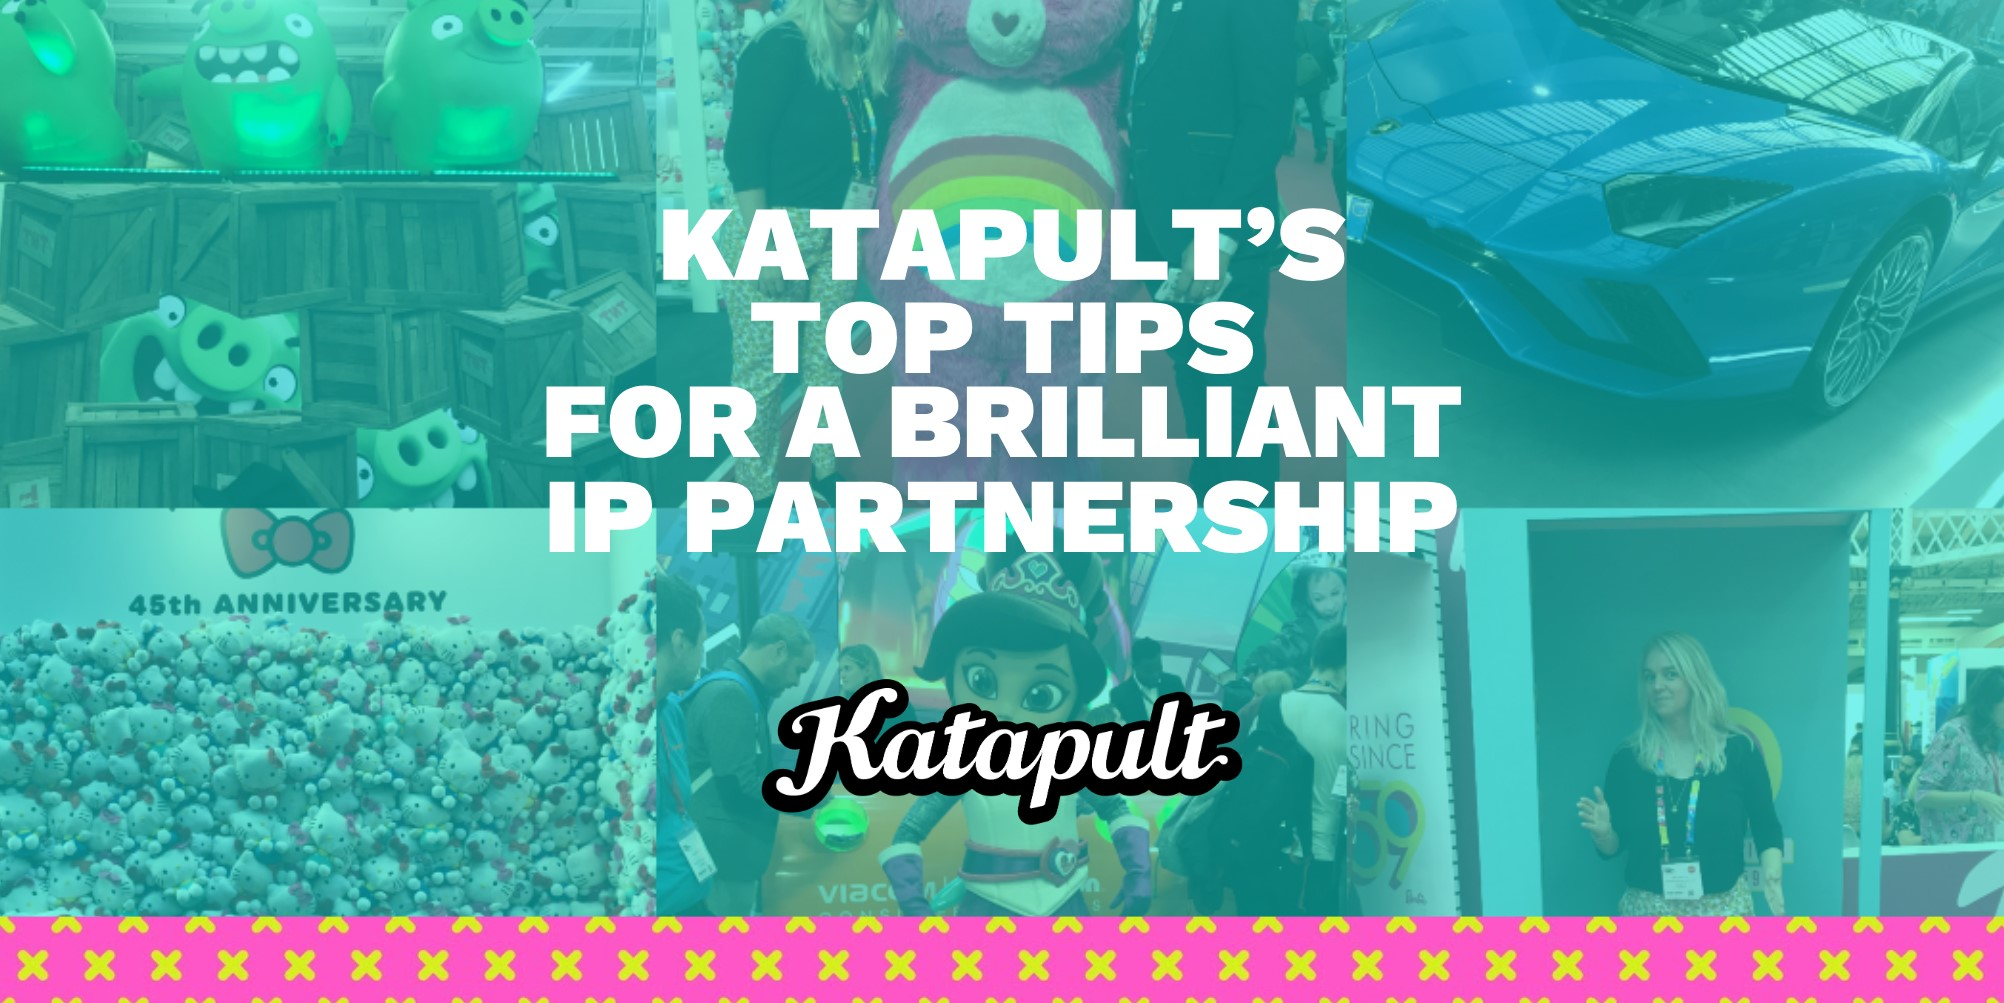 Katapult's top tips for a brilliant IP partnership